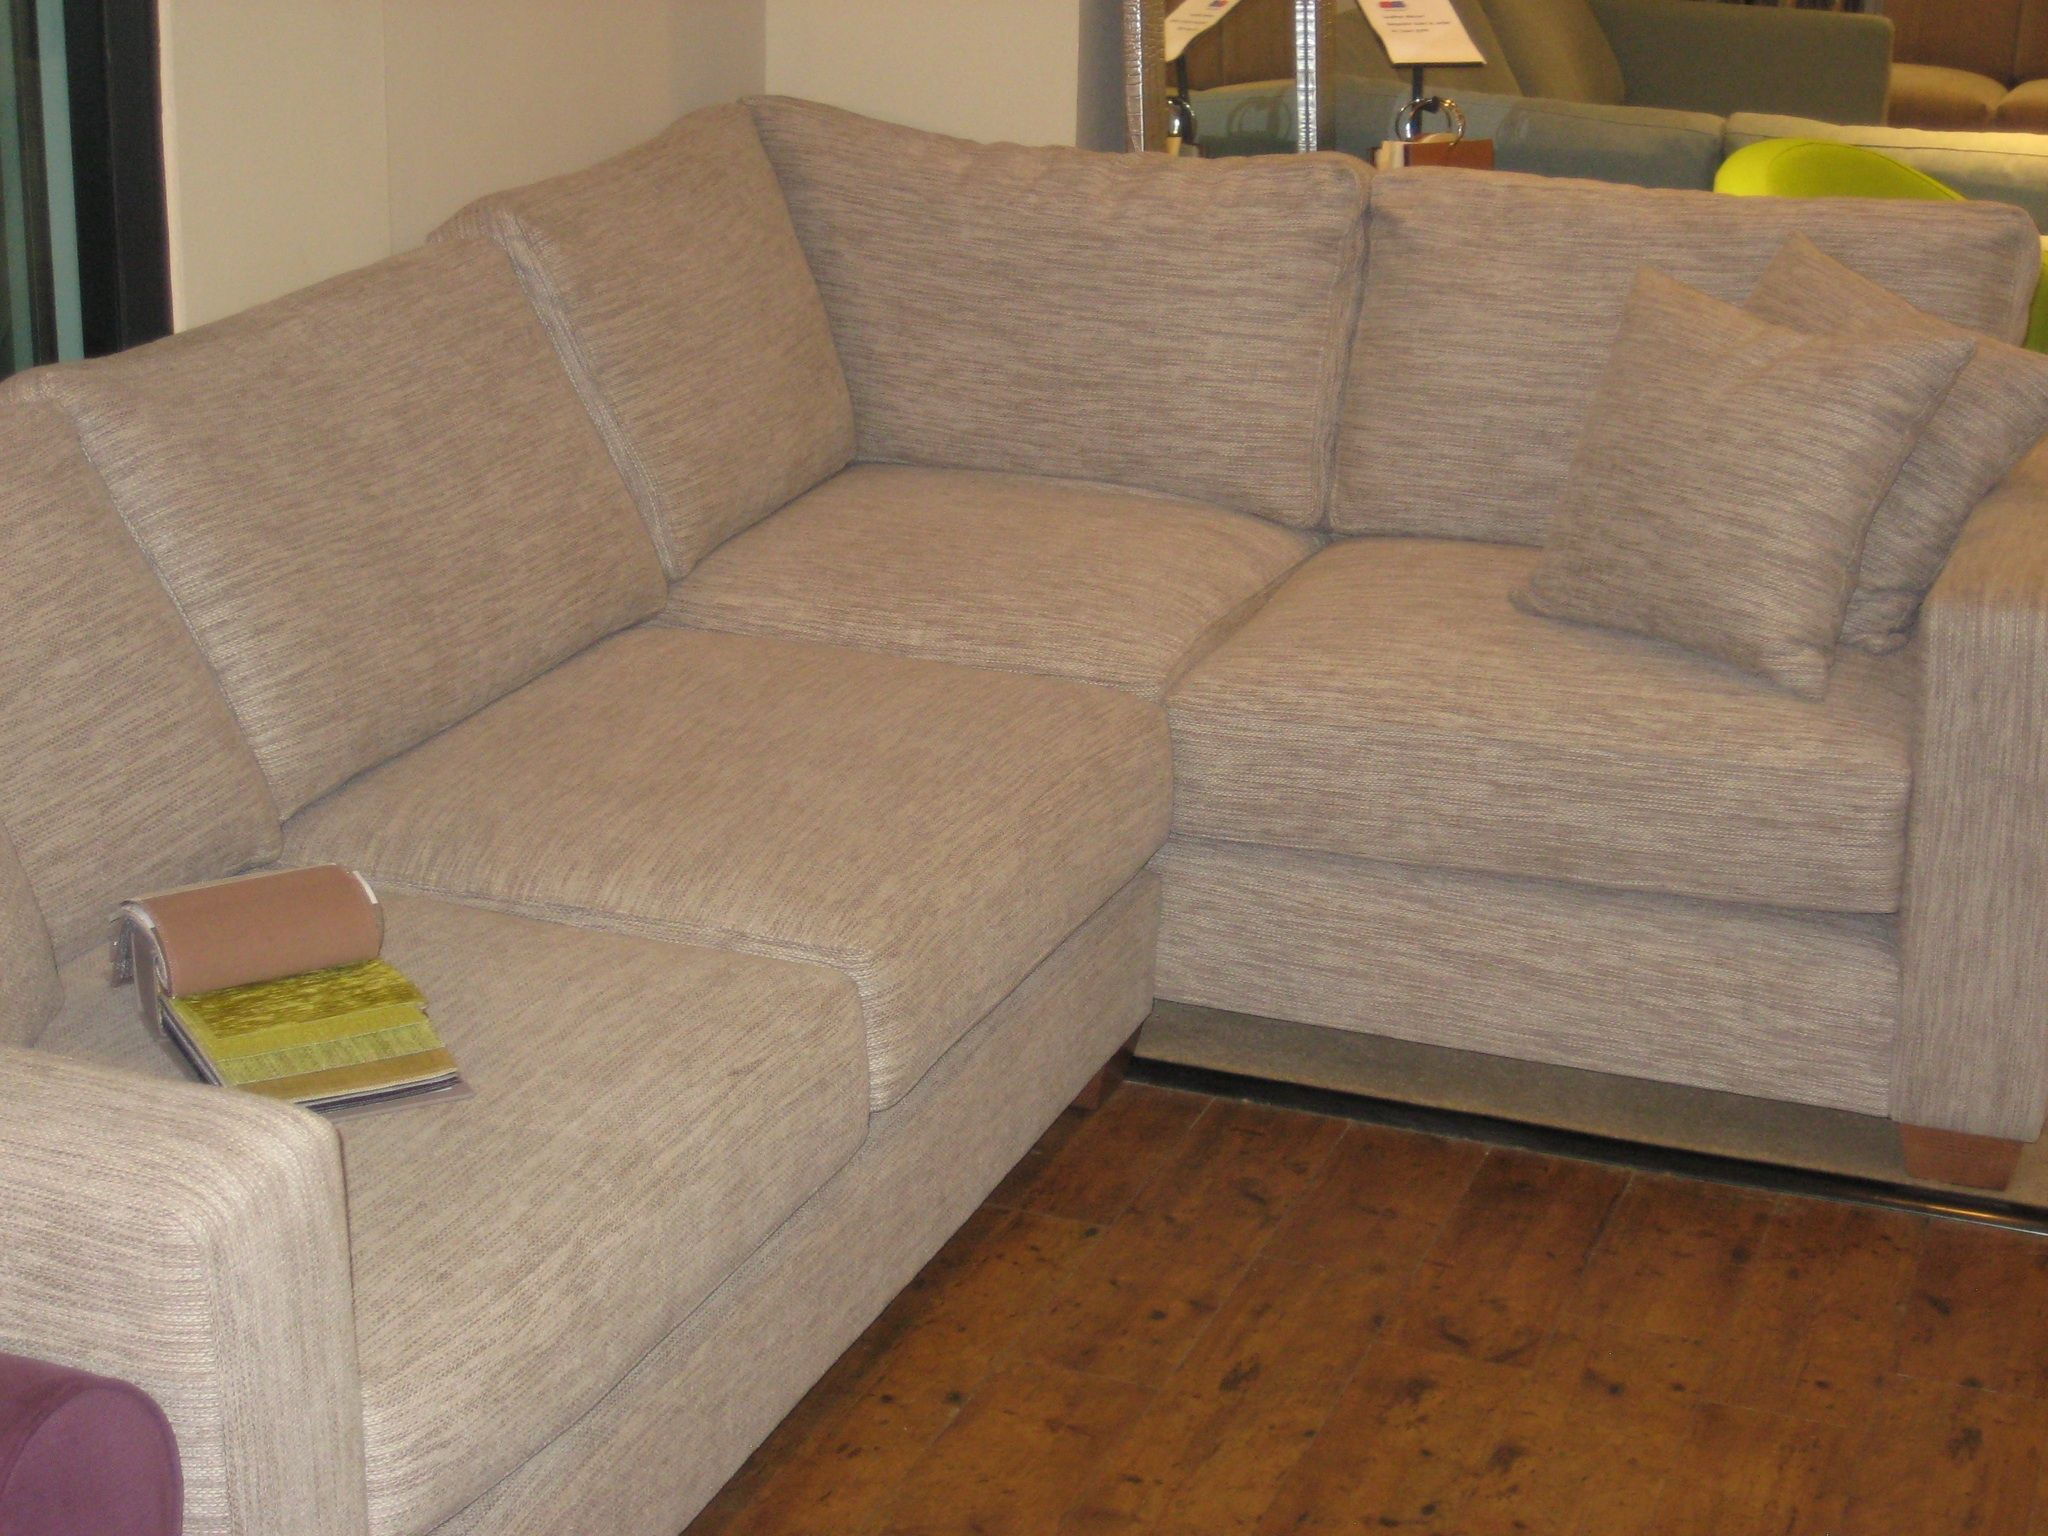 Uk Bespoke Sofa Corner Unit Fully Made To Measure By Our Long Eaton Nottingham Upholstery Specialists Con Imagenes Decoracion Hogar Decoracion De Unas